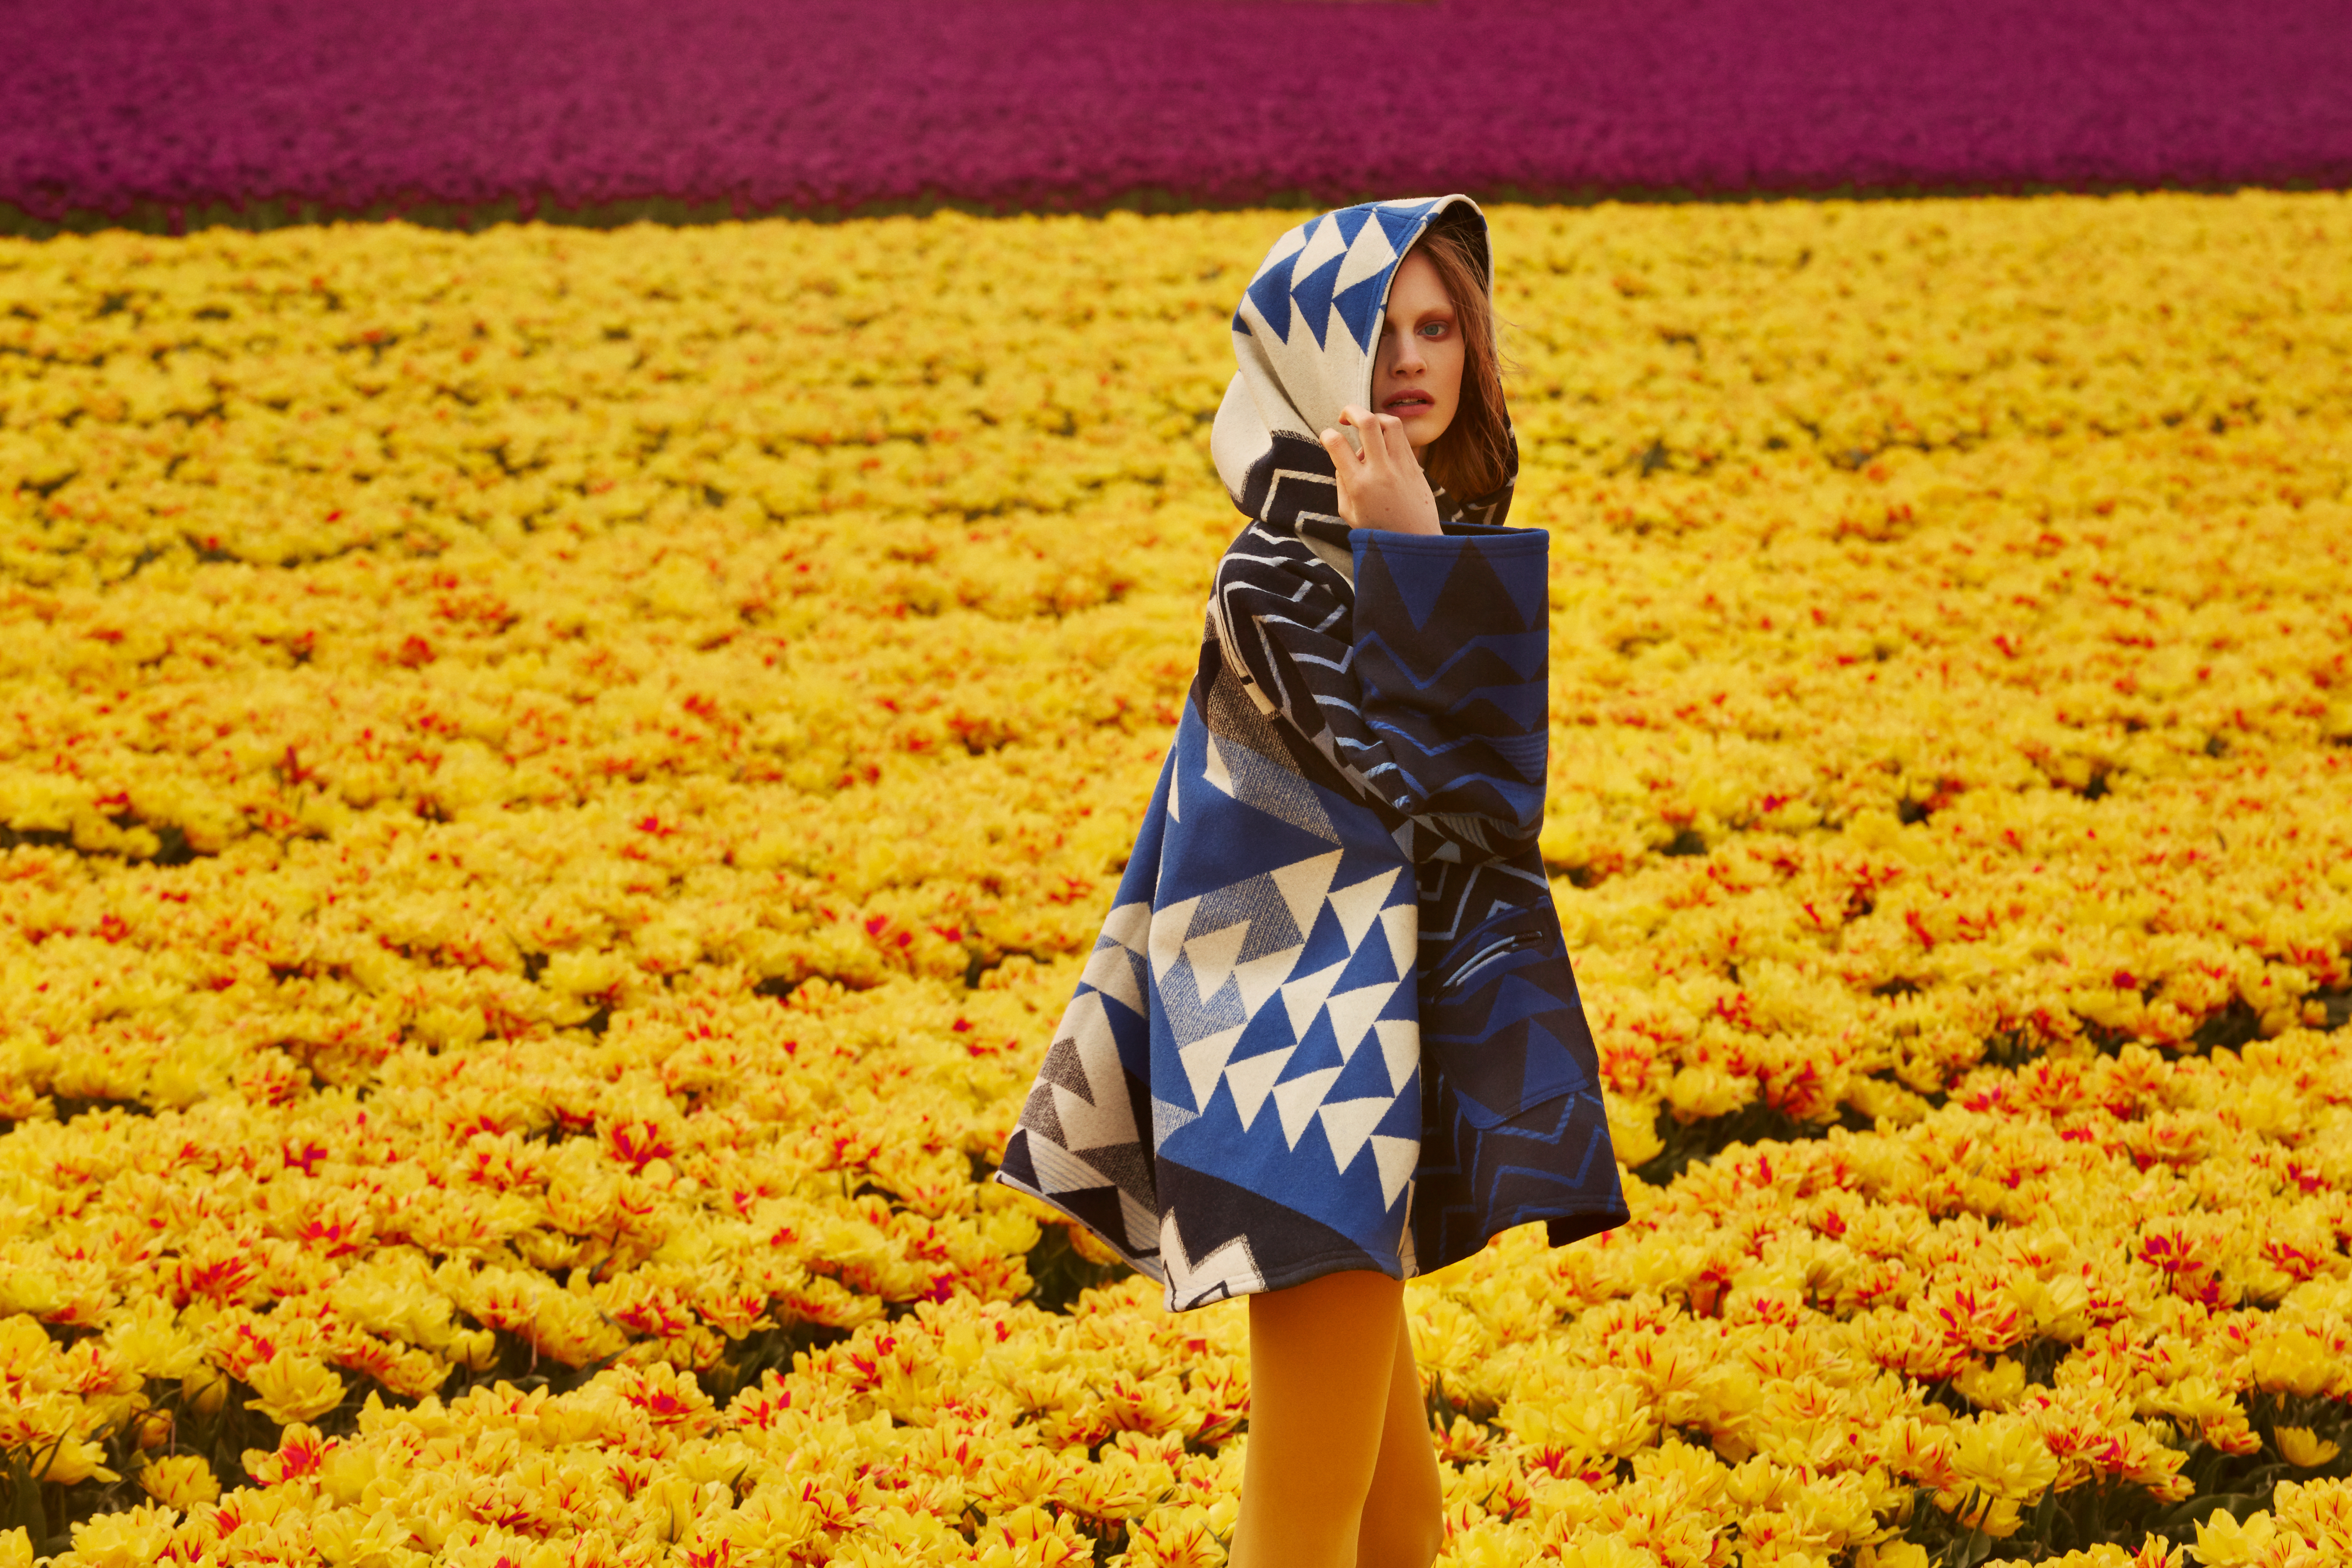 A model wearing a blue cape stands in a field of yellow tulips.